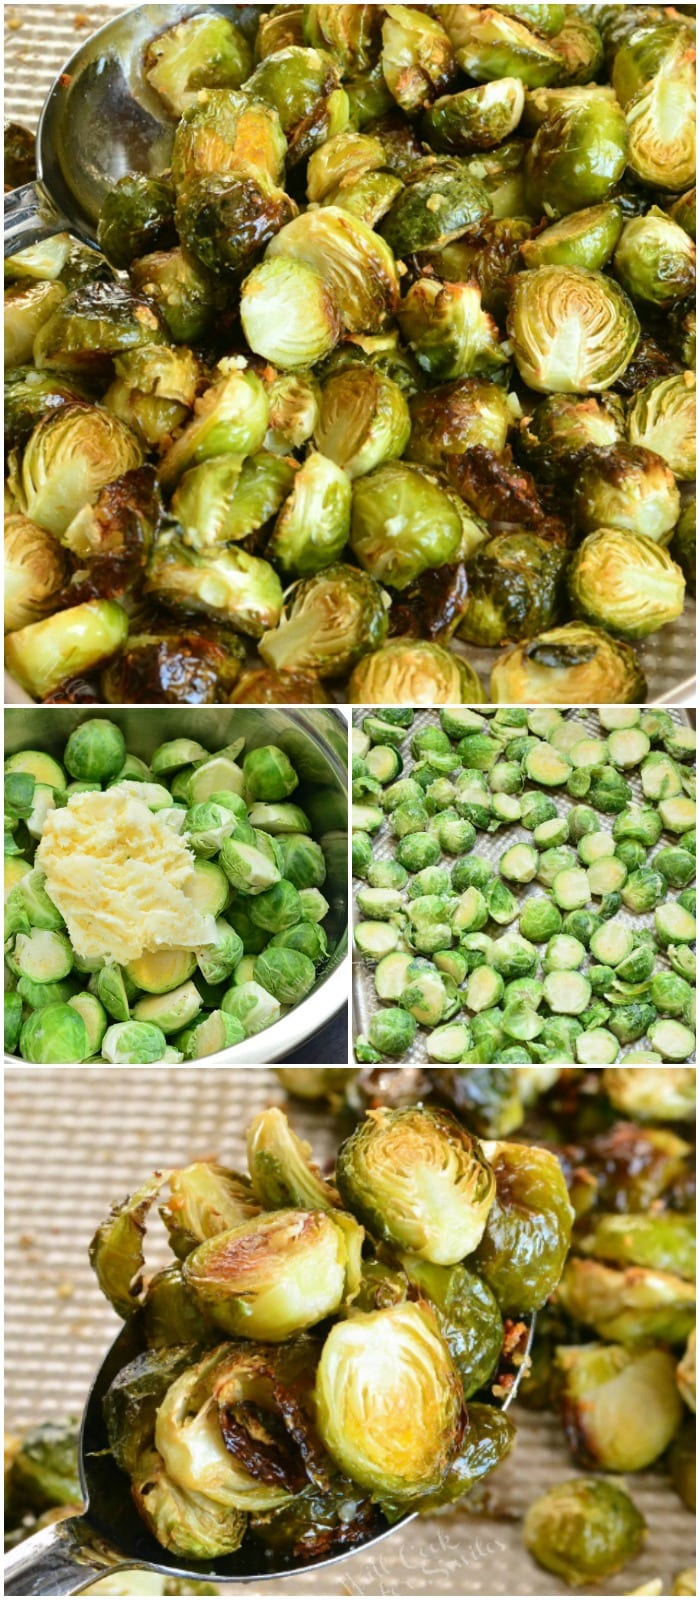 Roasted Brussels Sprouts with Garlic Butter collage